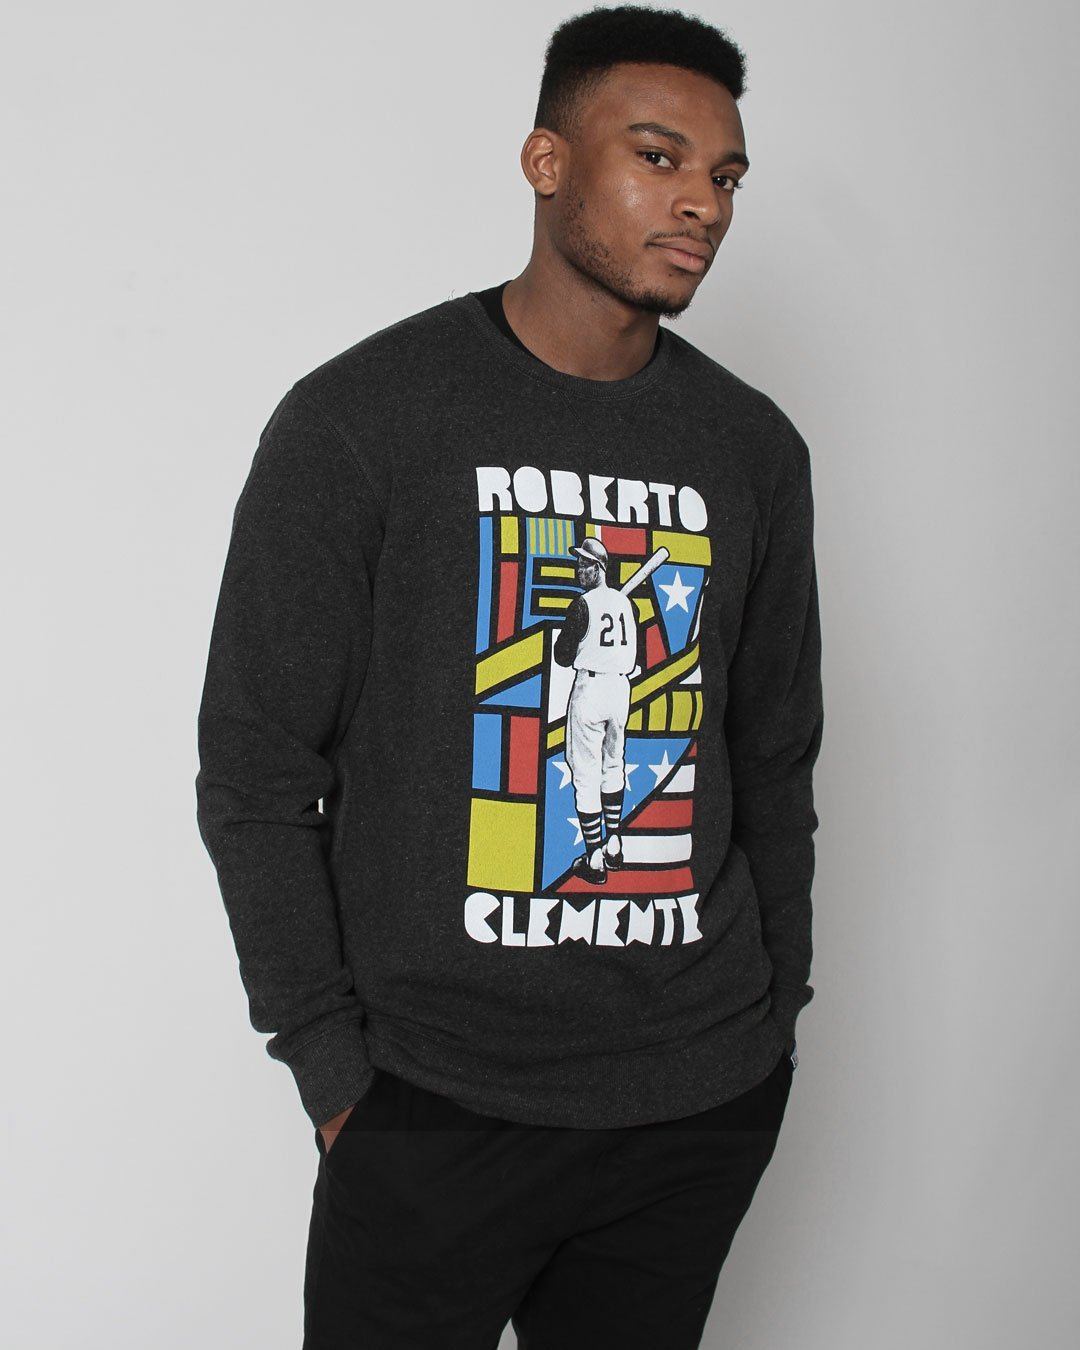 Roberto Clemente Sweatshirt - Roots of Inc dba Roots of Fight